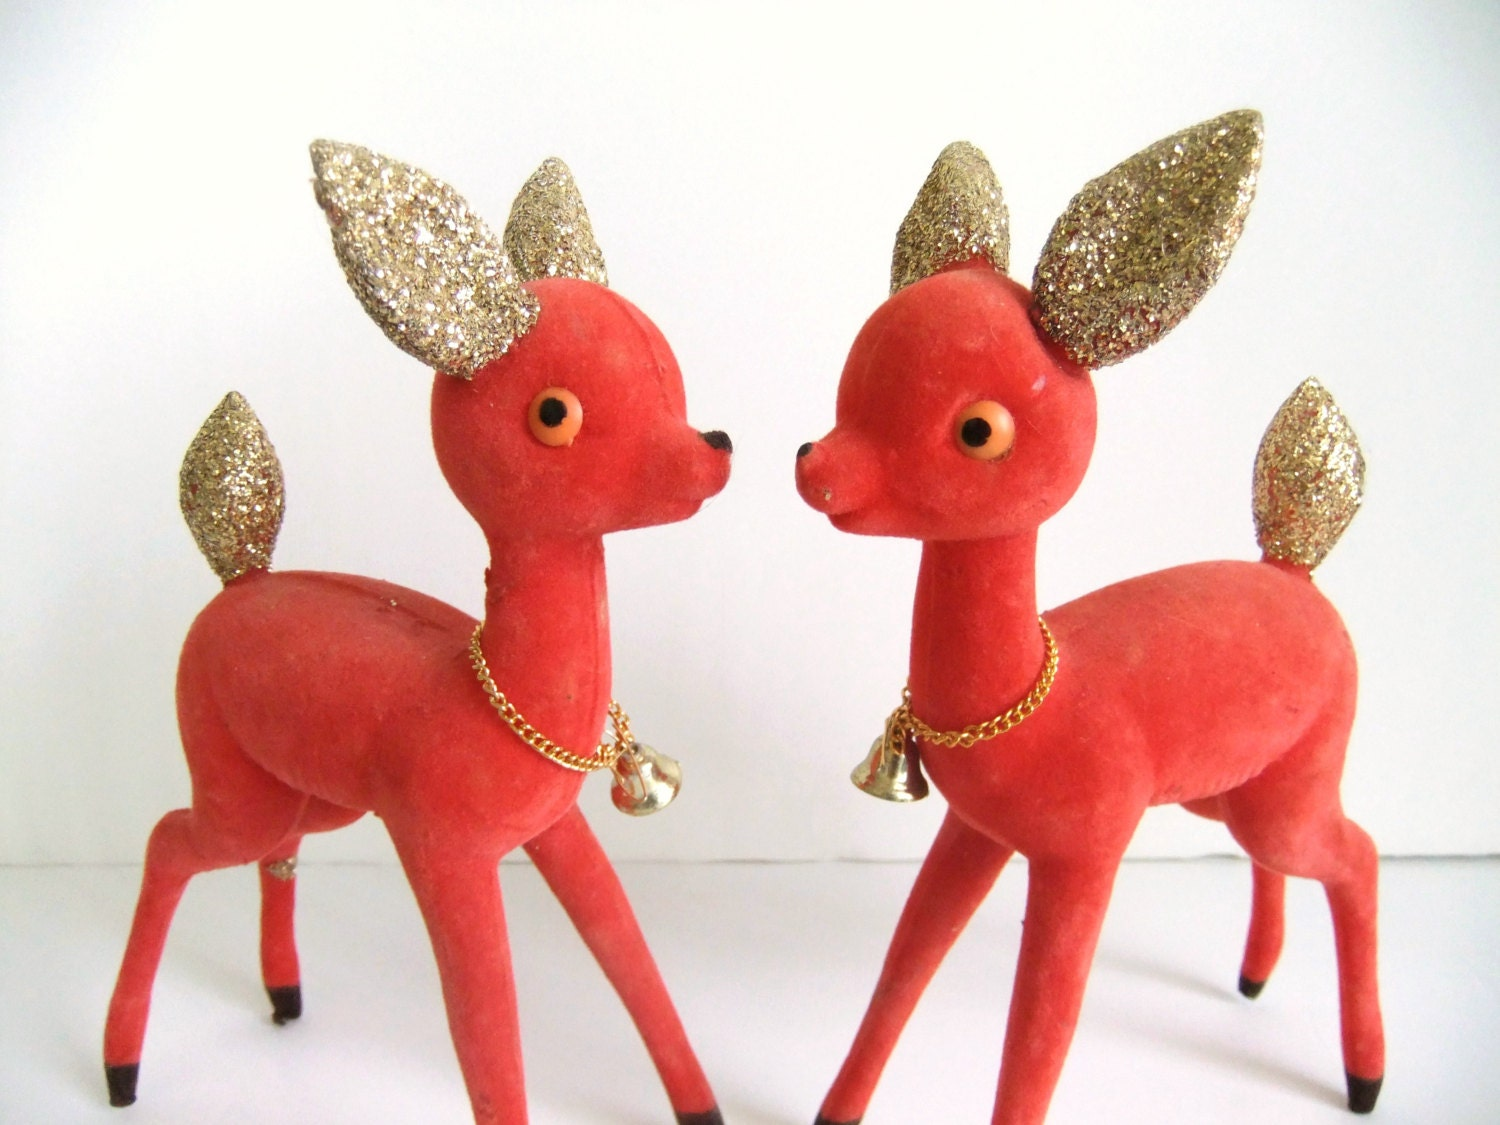 Flocked Christmas Deer Figurines Large Red Deer Gold Glitter